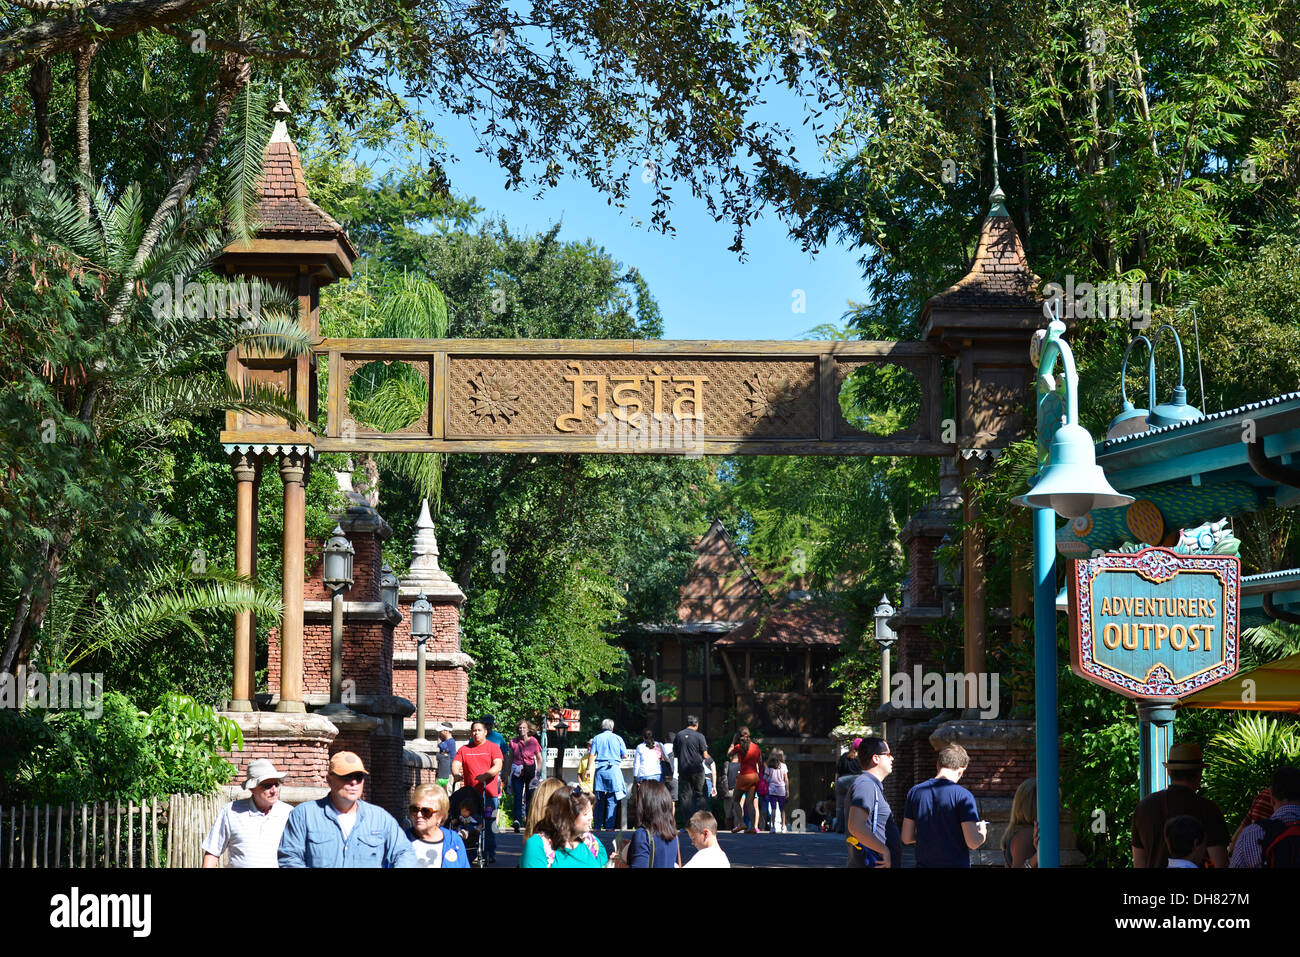 Animal Kingdom, Asia, entrance to, Disney World Resort, Orlando Florida - Stock Image